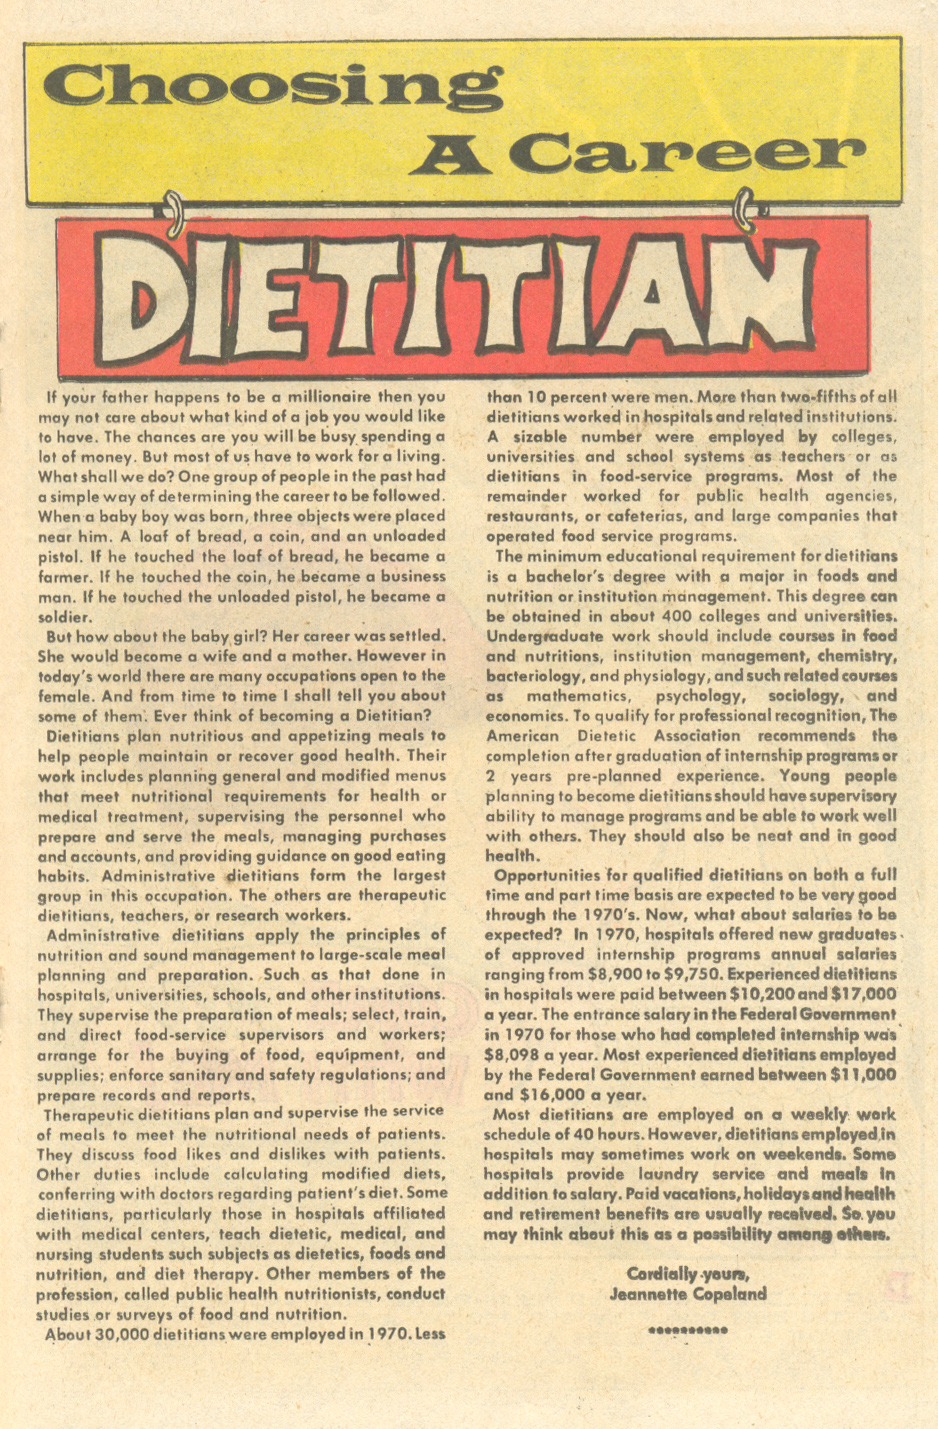 """Choosing a Career - Dietitian"" Career Girl Romances #73 (February 1973)"